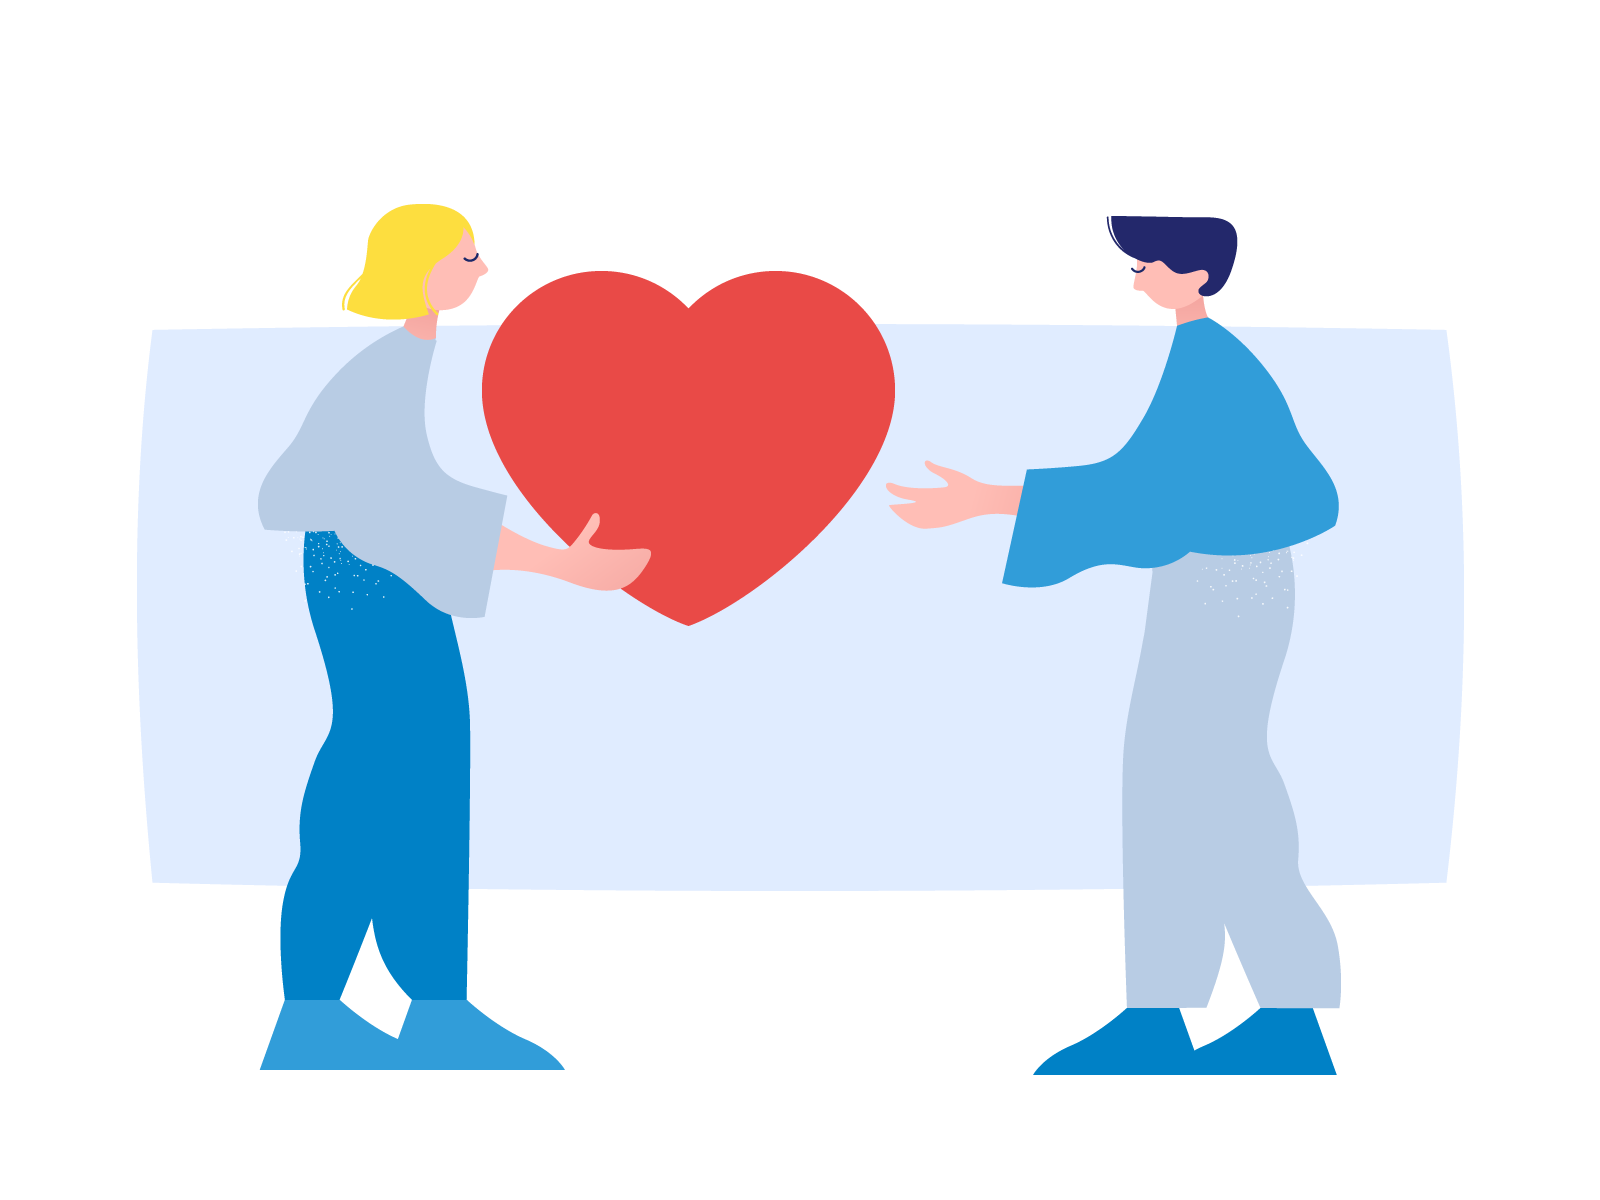 Illustration of a woman giving someone a heart.